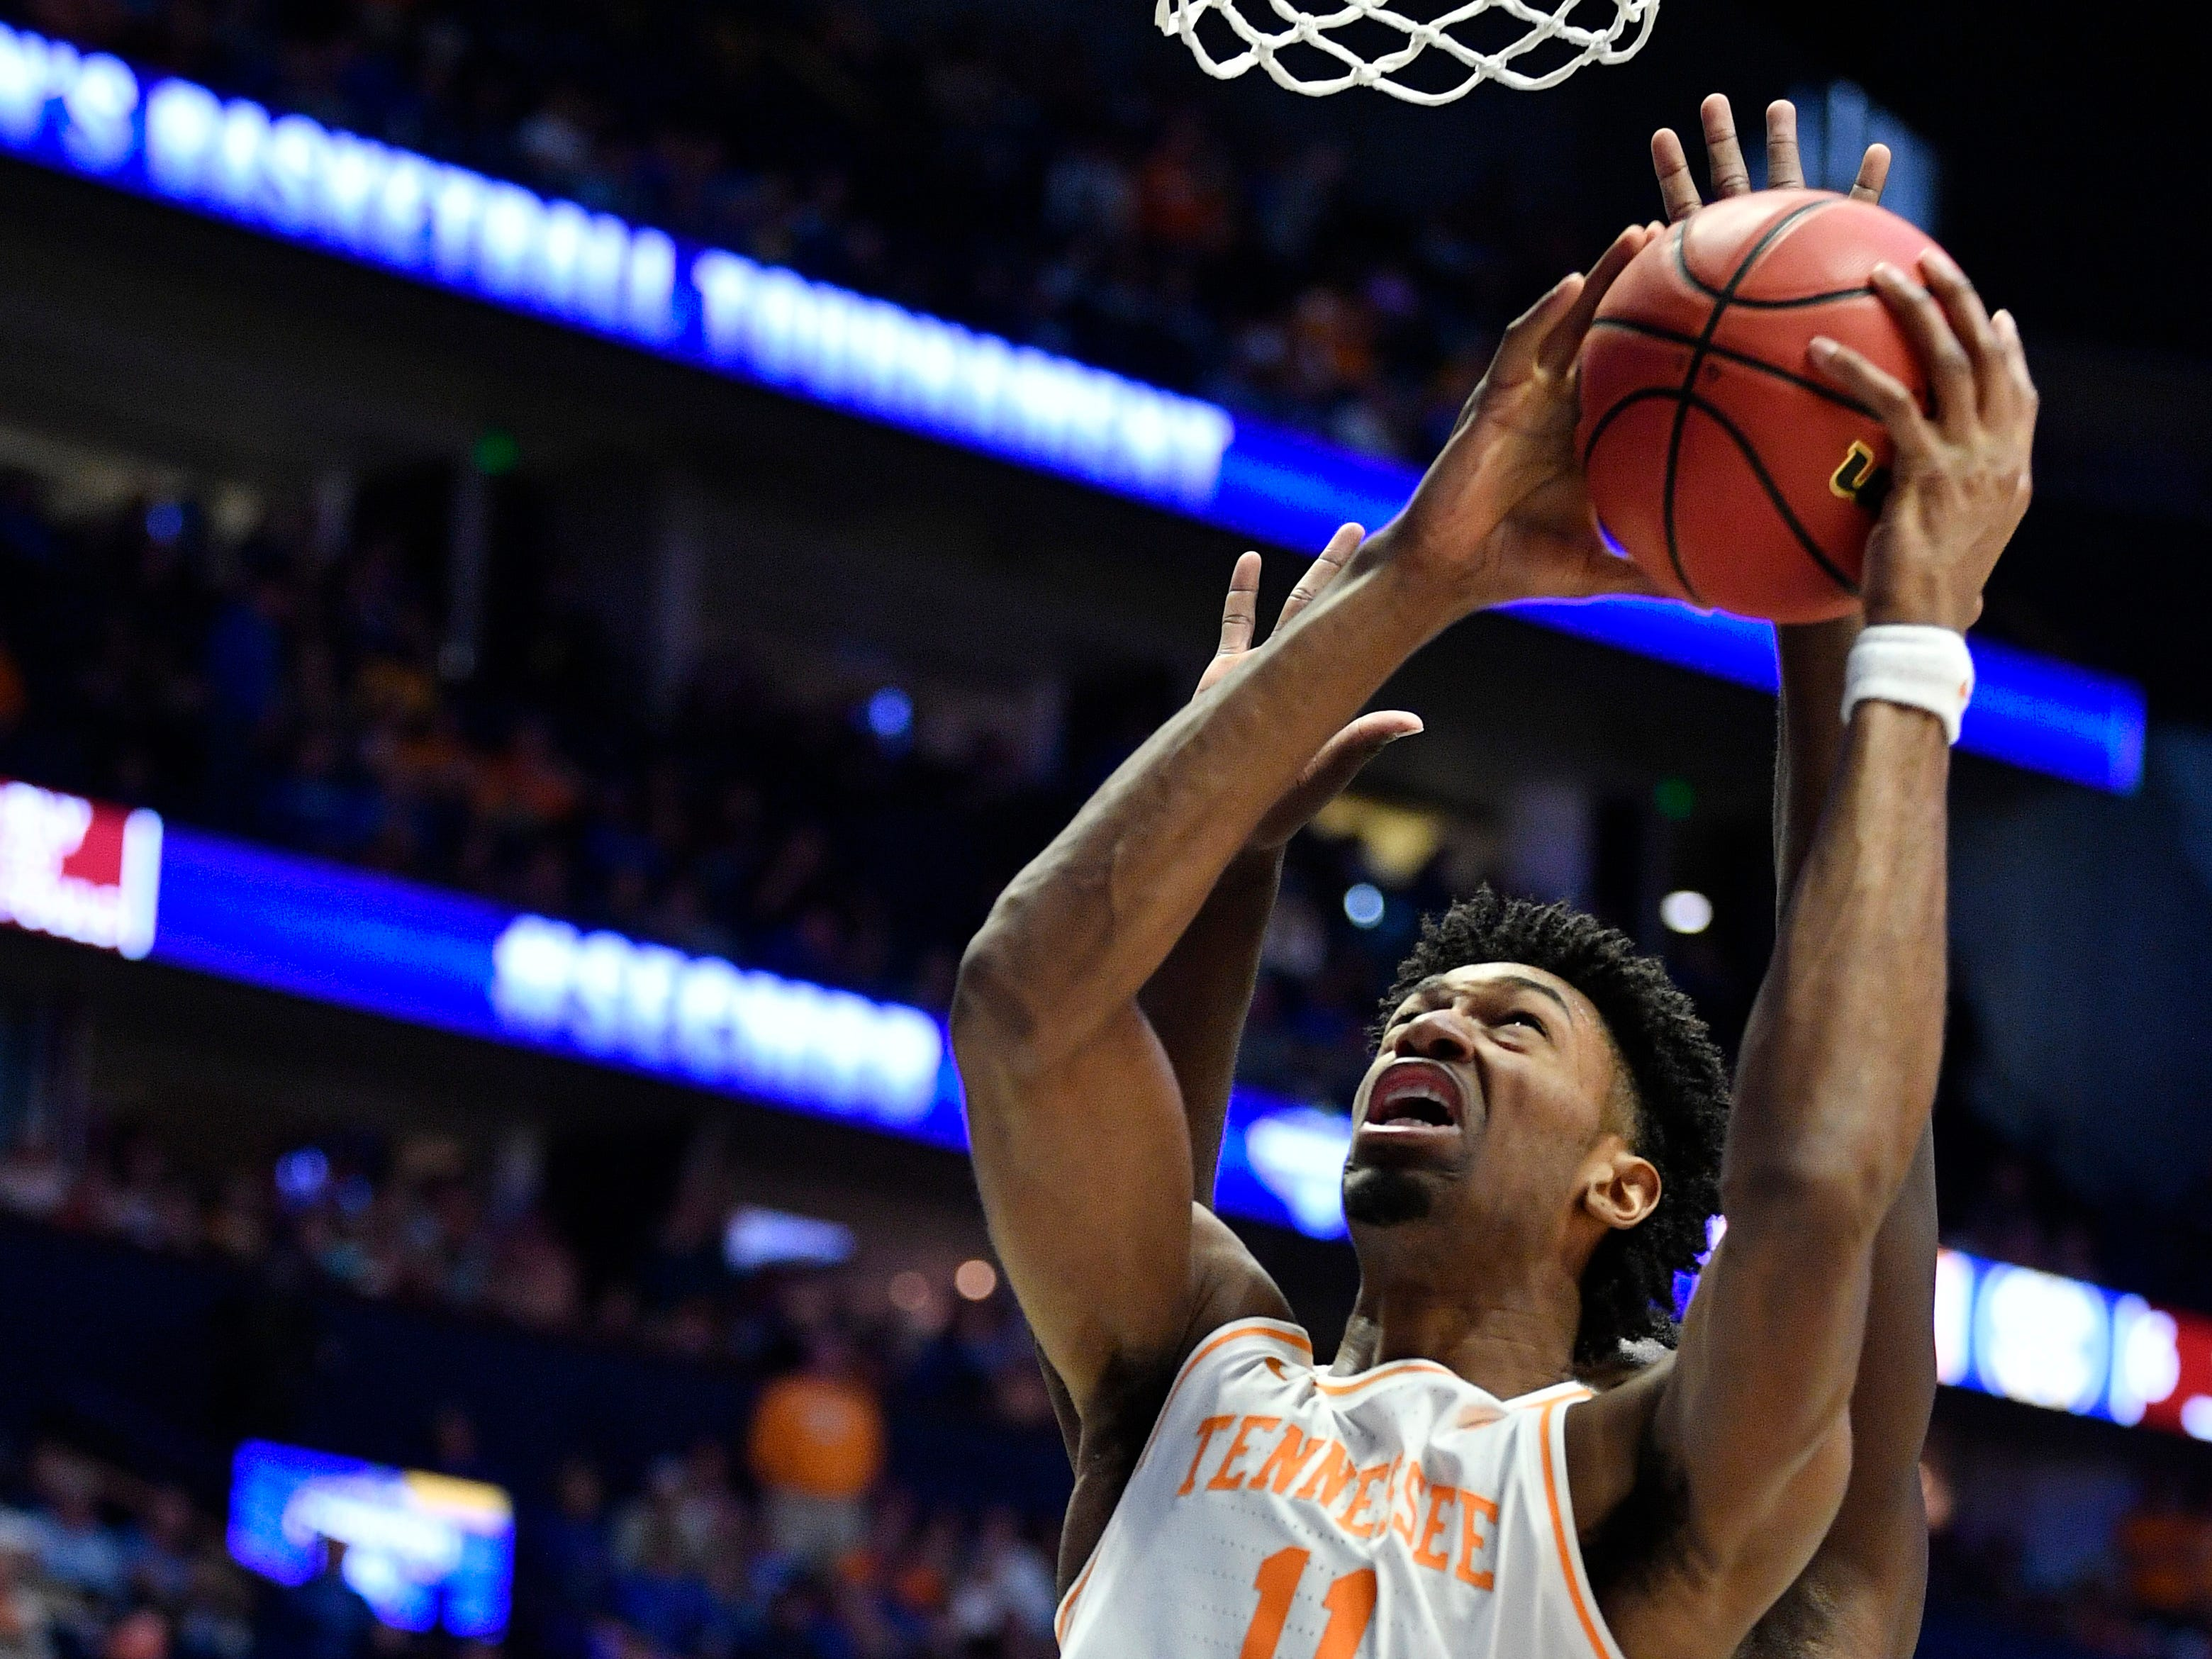 Tennessee forward Kyle Alexander (11) goes up for a shot during the first half of the SEC Men's Basketball Tournament game against Mississippi State at Bridgestone Arena in Nashville, Tenn., Friday, March 15, 2019.